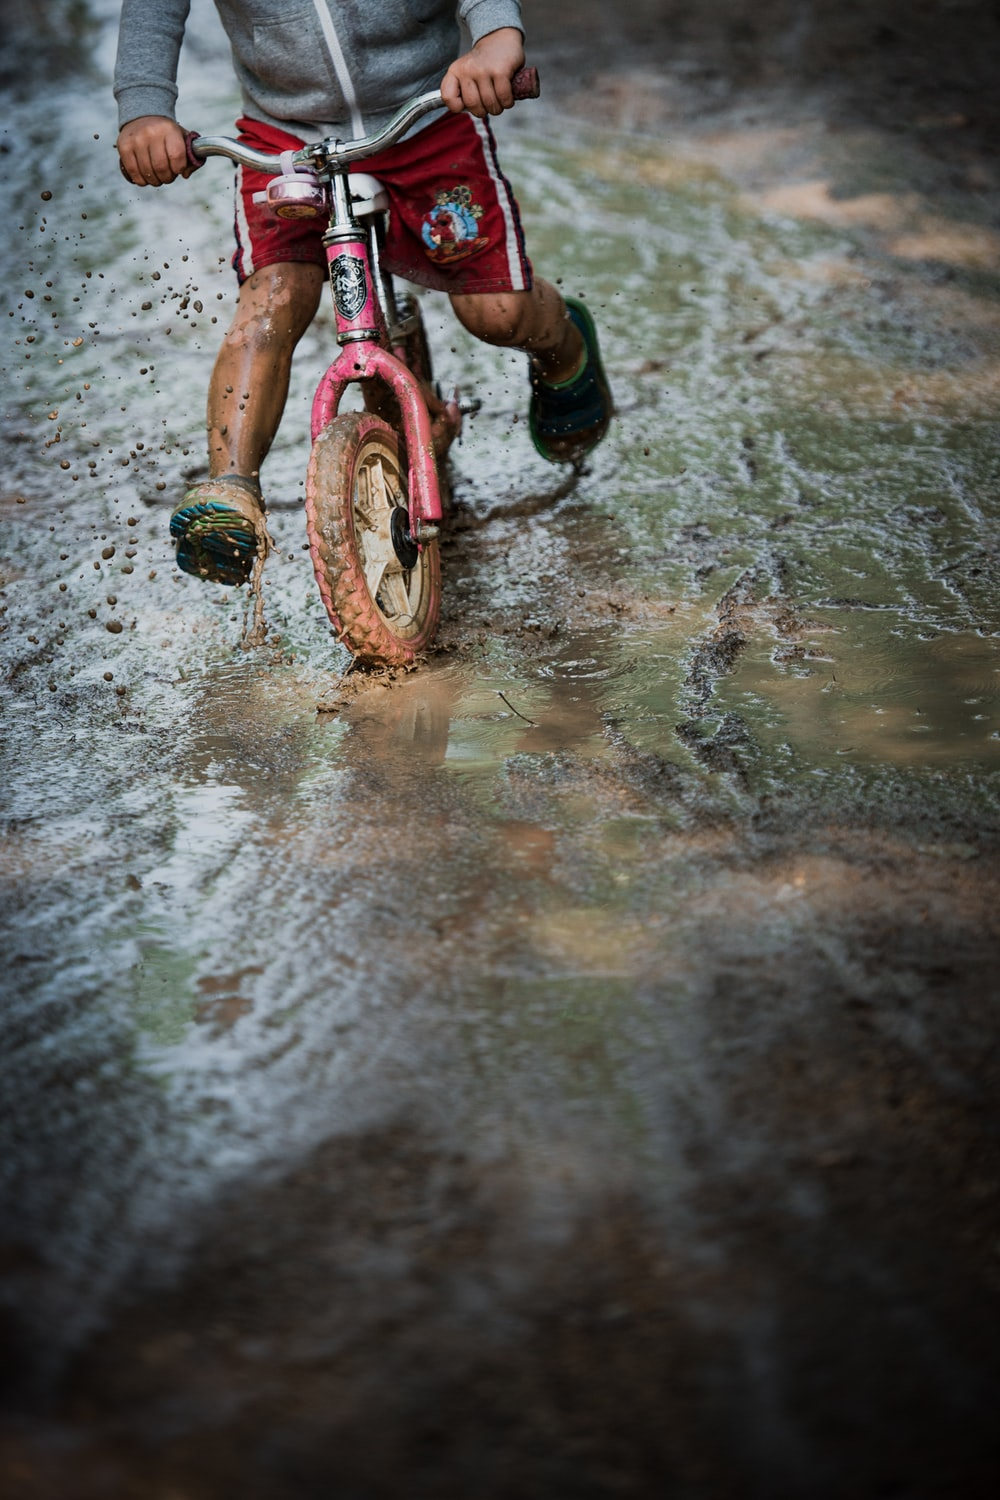 girl in pink and black bicycle on wet ground